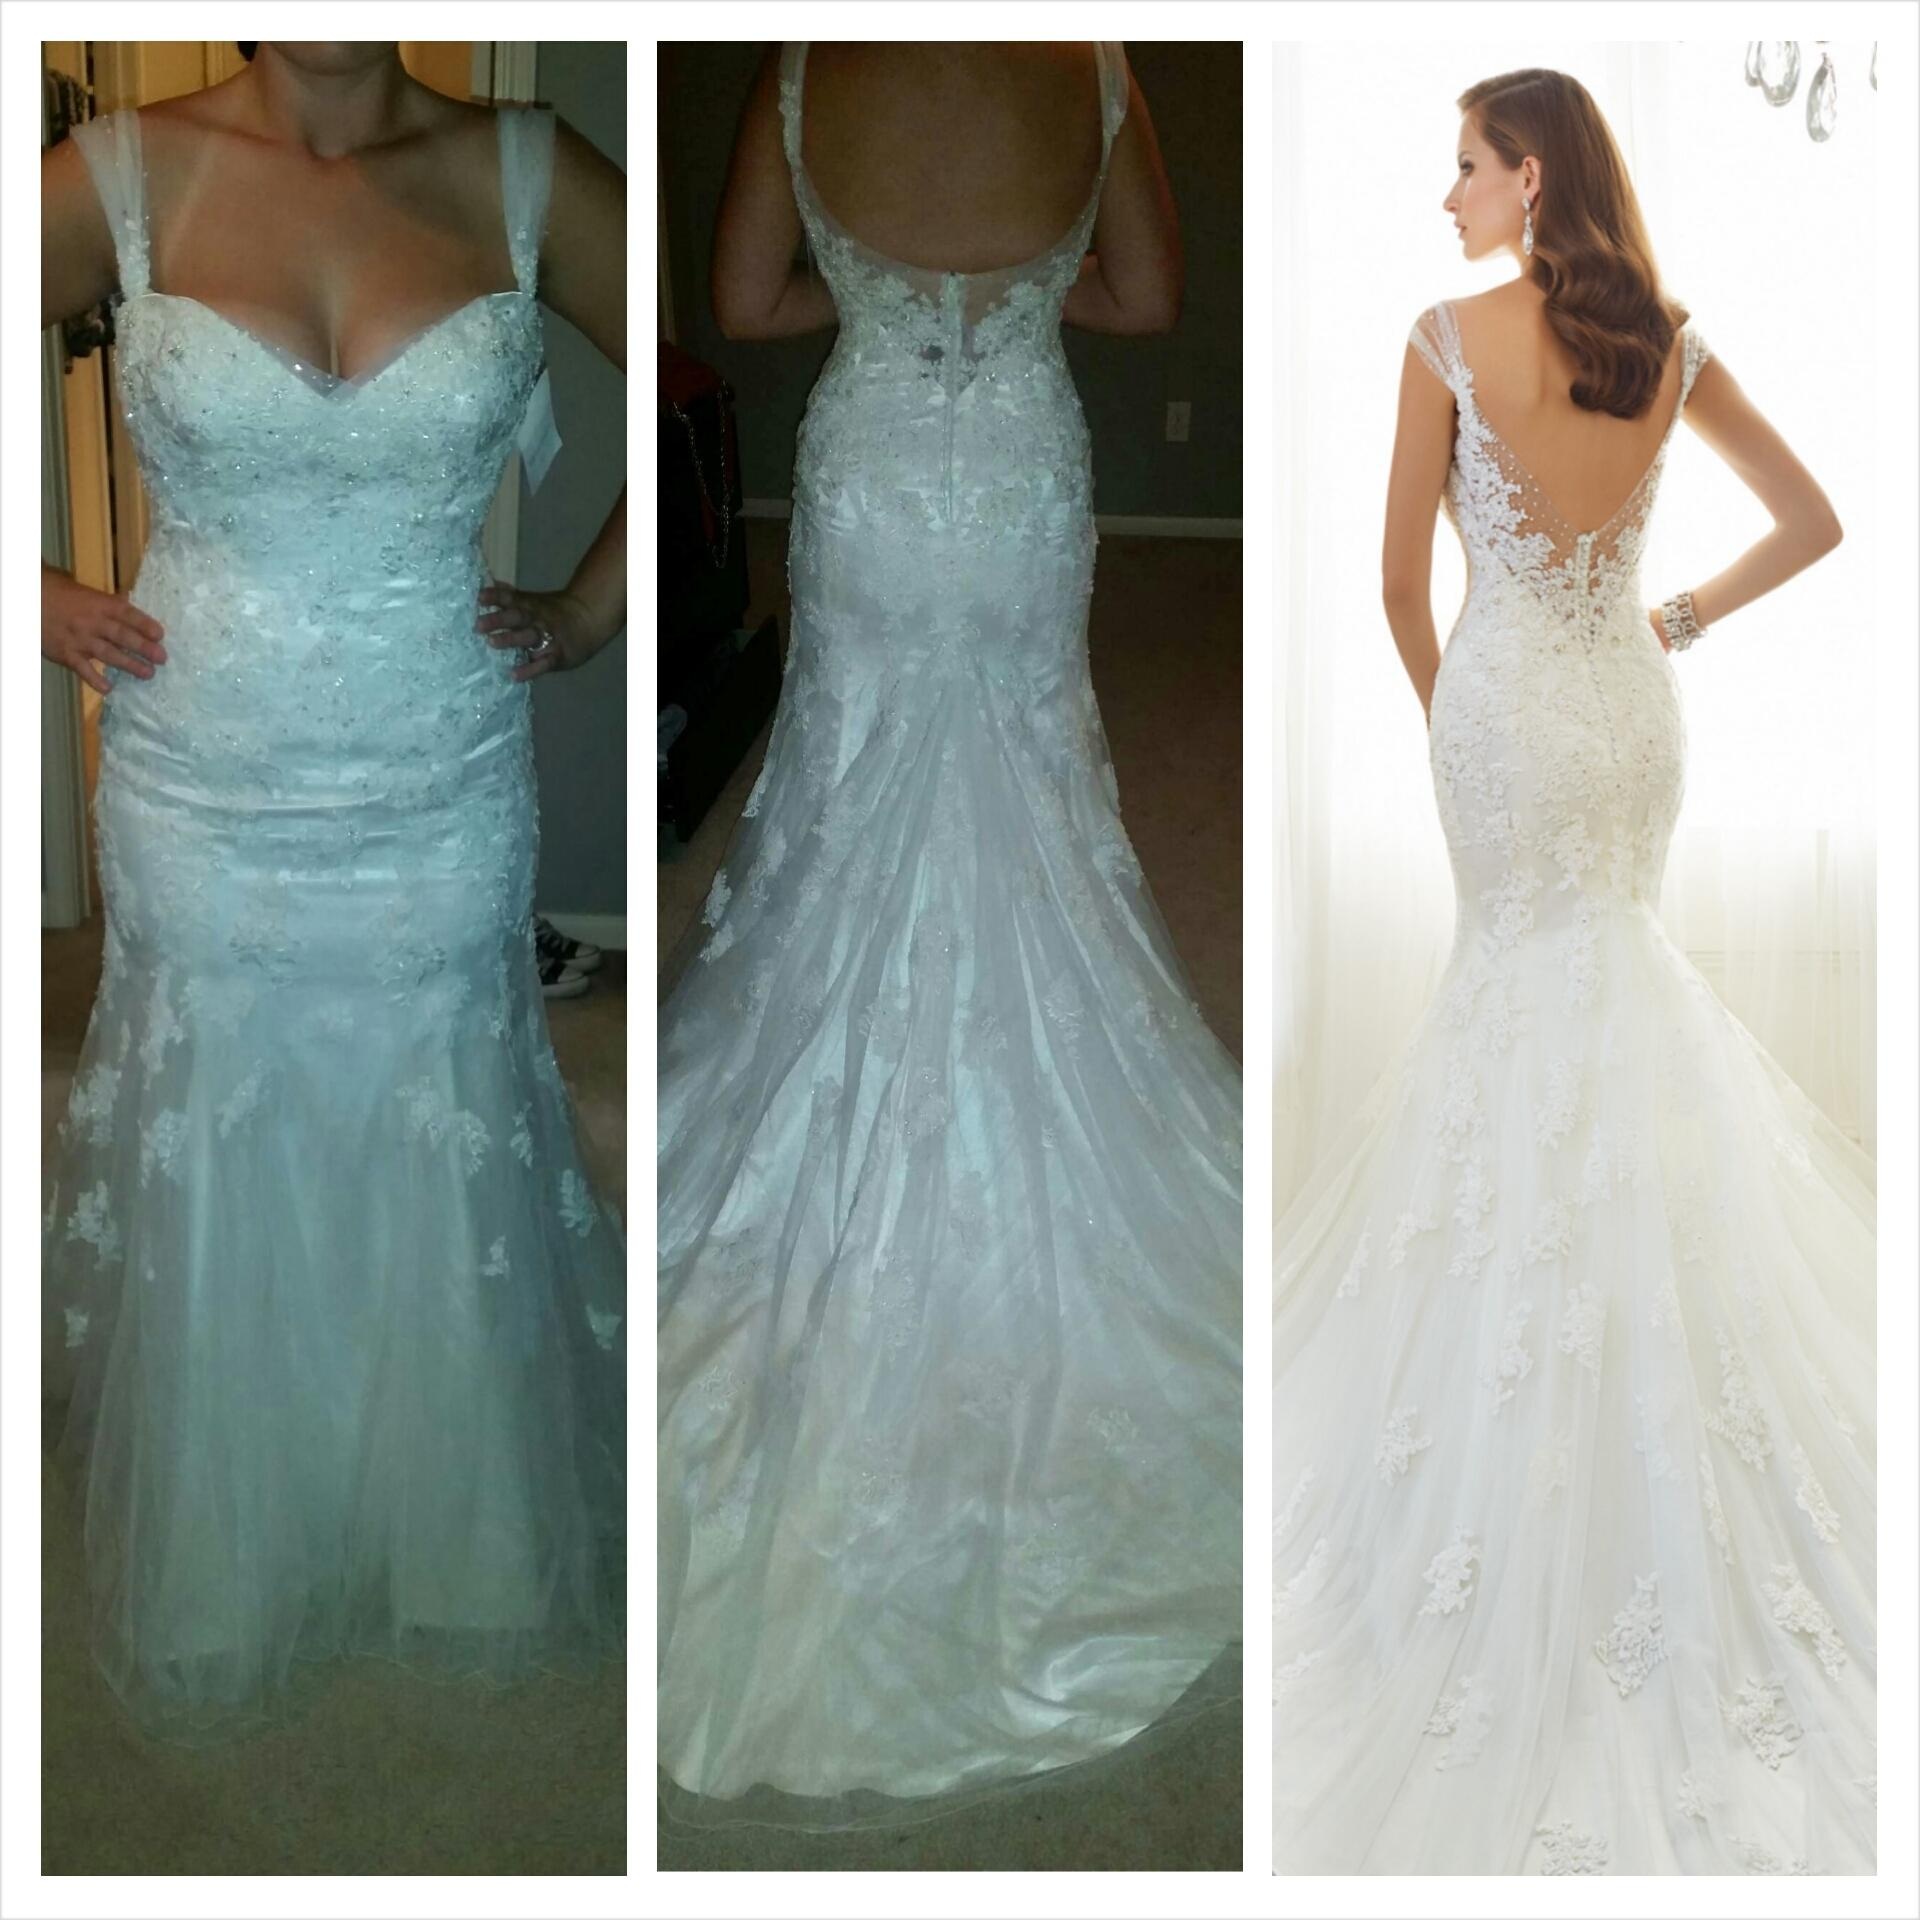 Cost Of Sophia Tolli Wedding Gowns: Sophia Tolli Ivory Lance And Tulle Jairta Y11569 Wedding